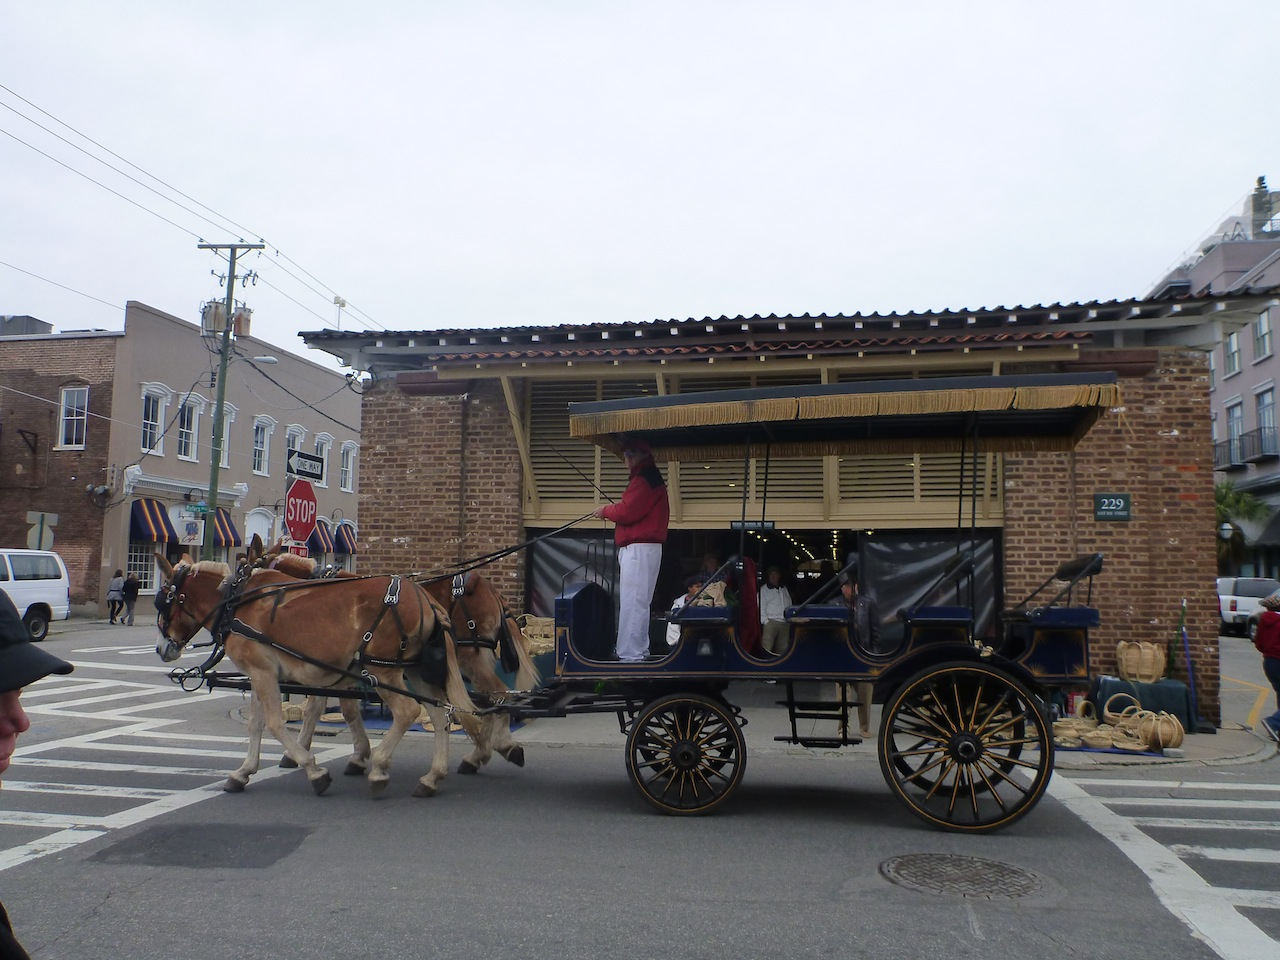 One Of The Many Horse Drawn Carriages Around Town